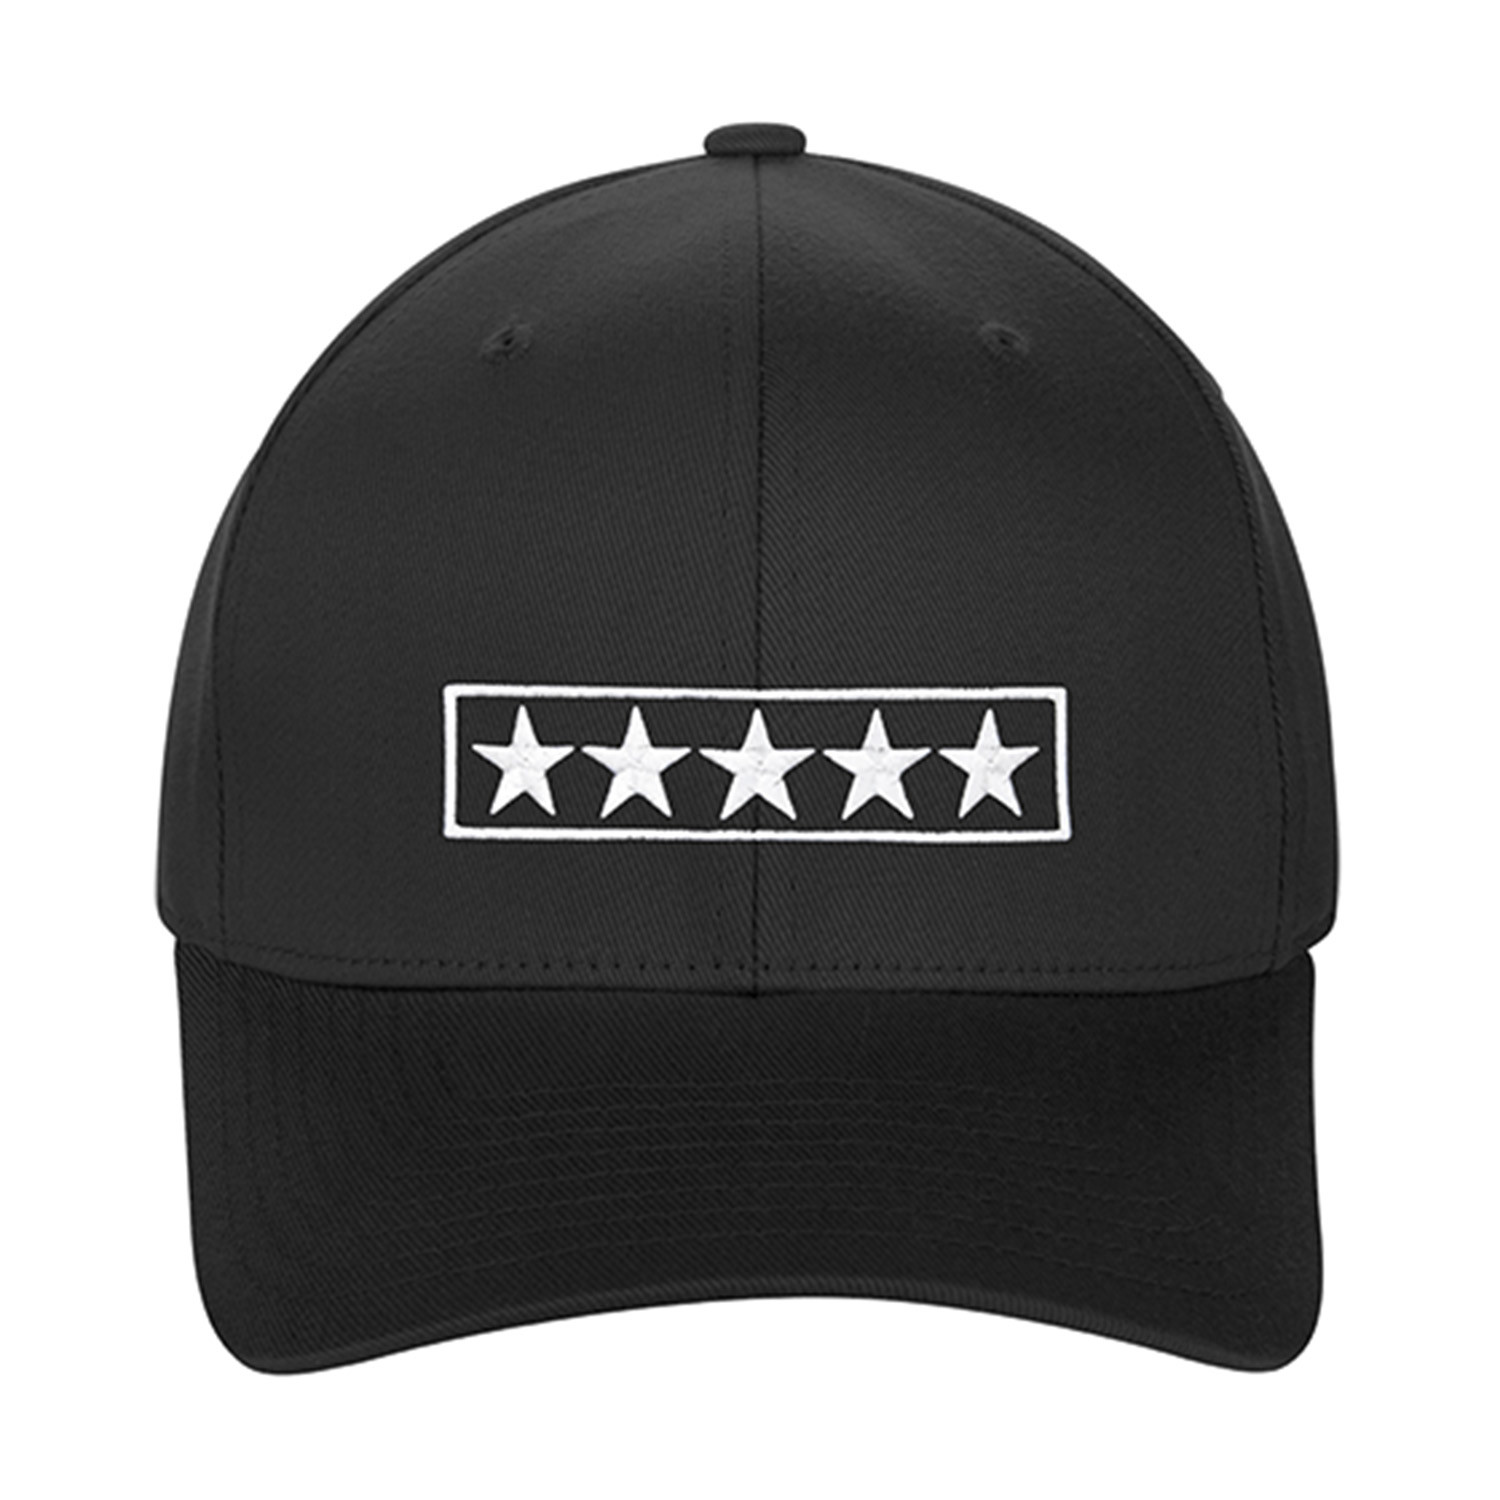 Vans Classic Patch Baseball Cap - shop-celebrity.com